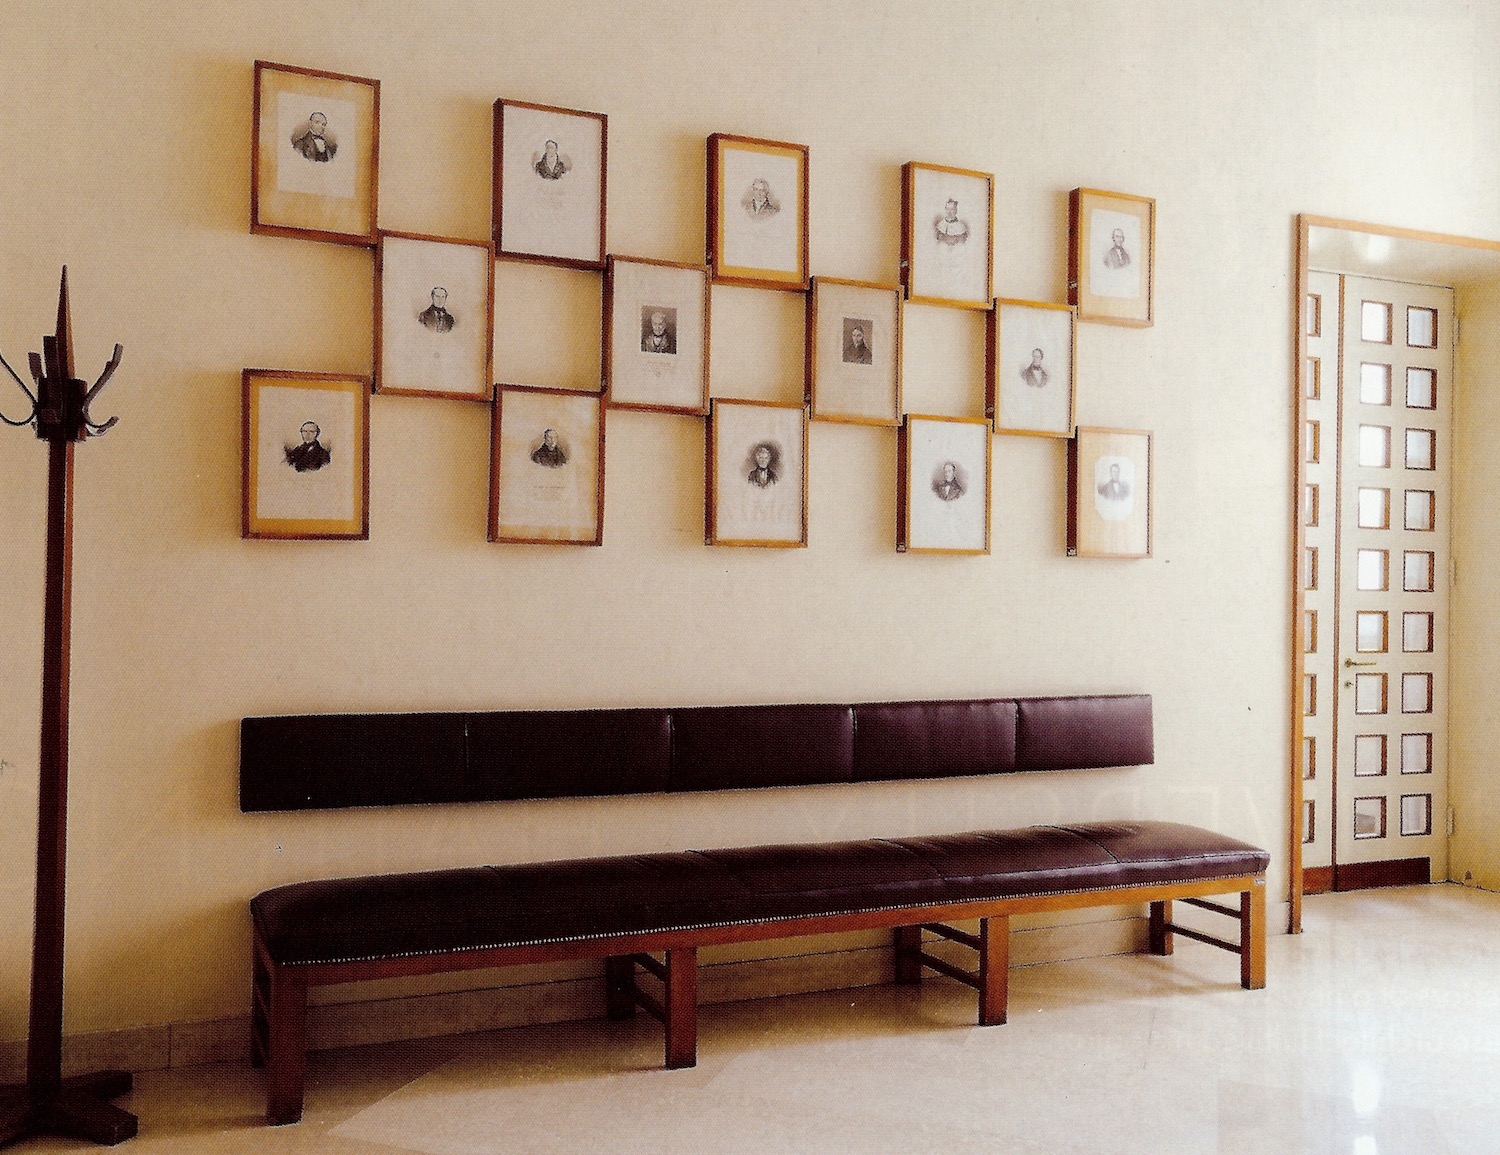 grand picture walls - staggered integrated picture wall of engravings designed by Milanese architect Giò Ponti in a university building in Padua - World of Interiors via Atticmag